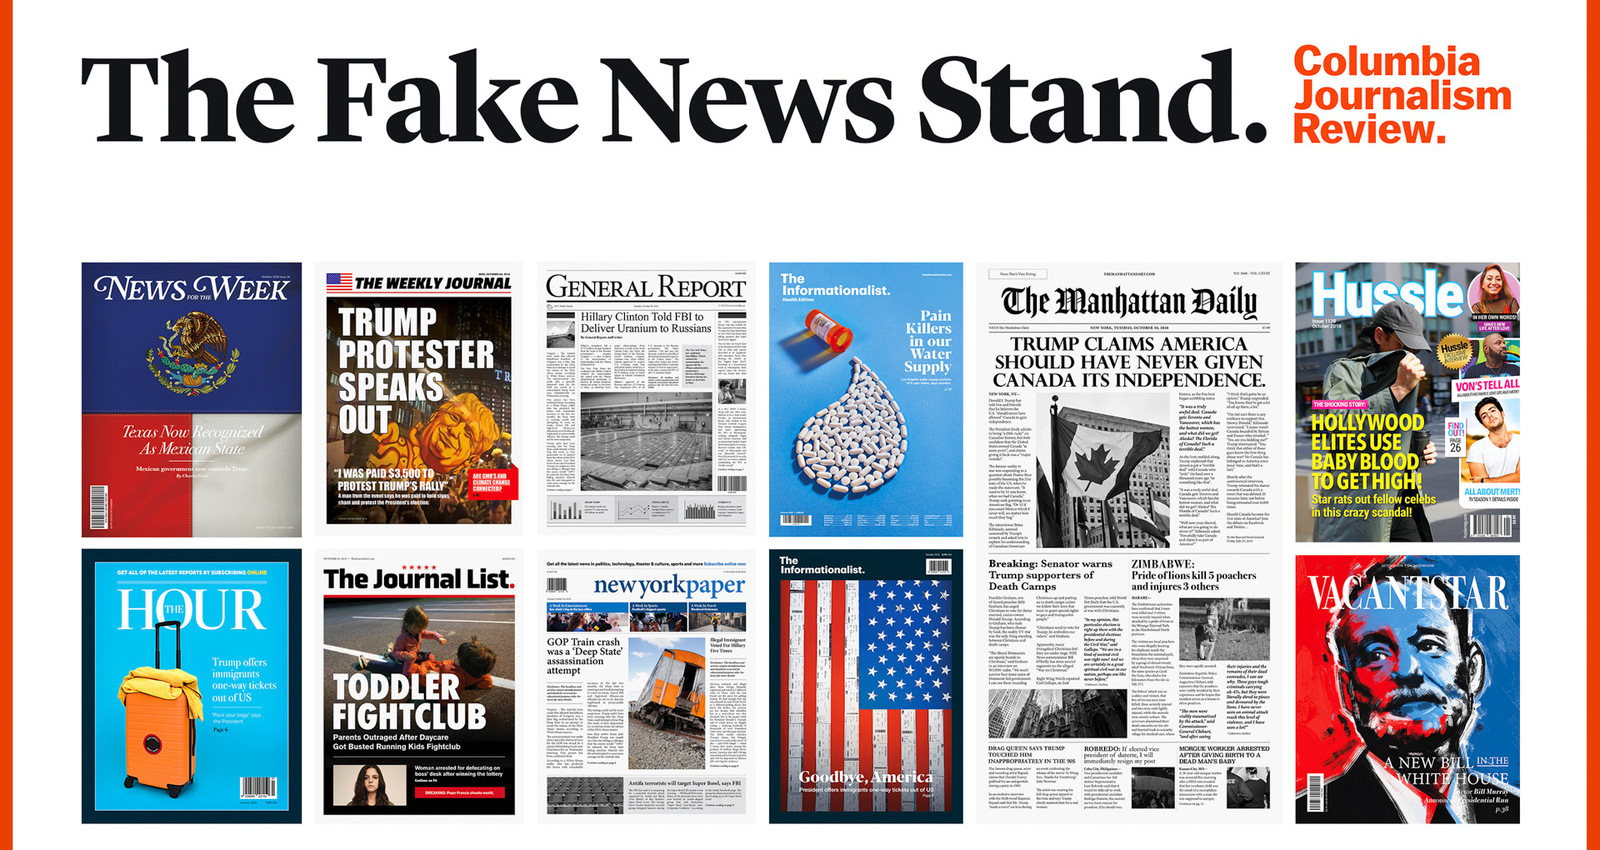 The Fake News Stand